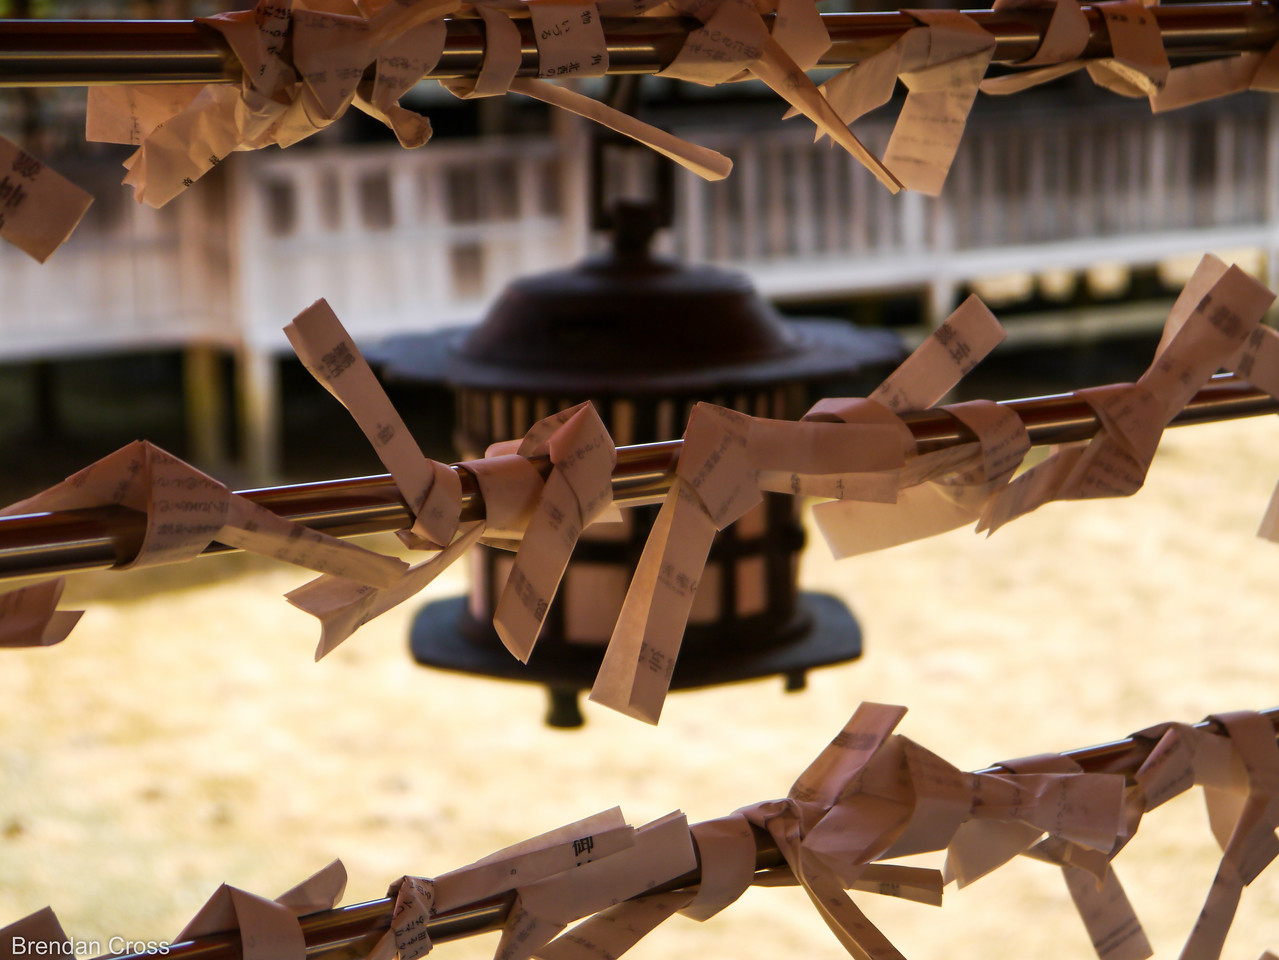 Wishes in the Itsukushima Shrine